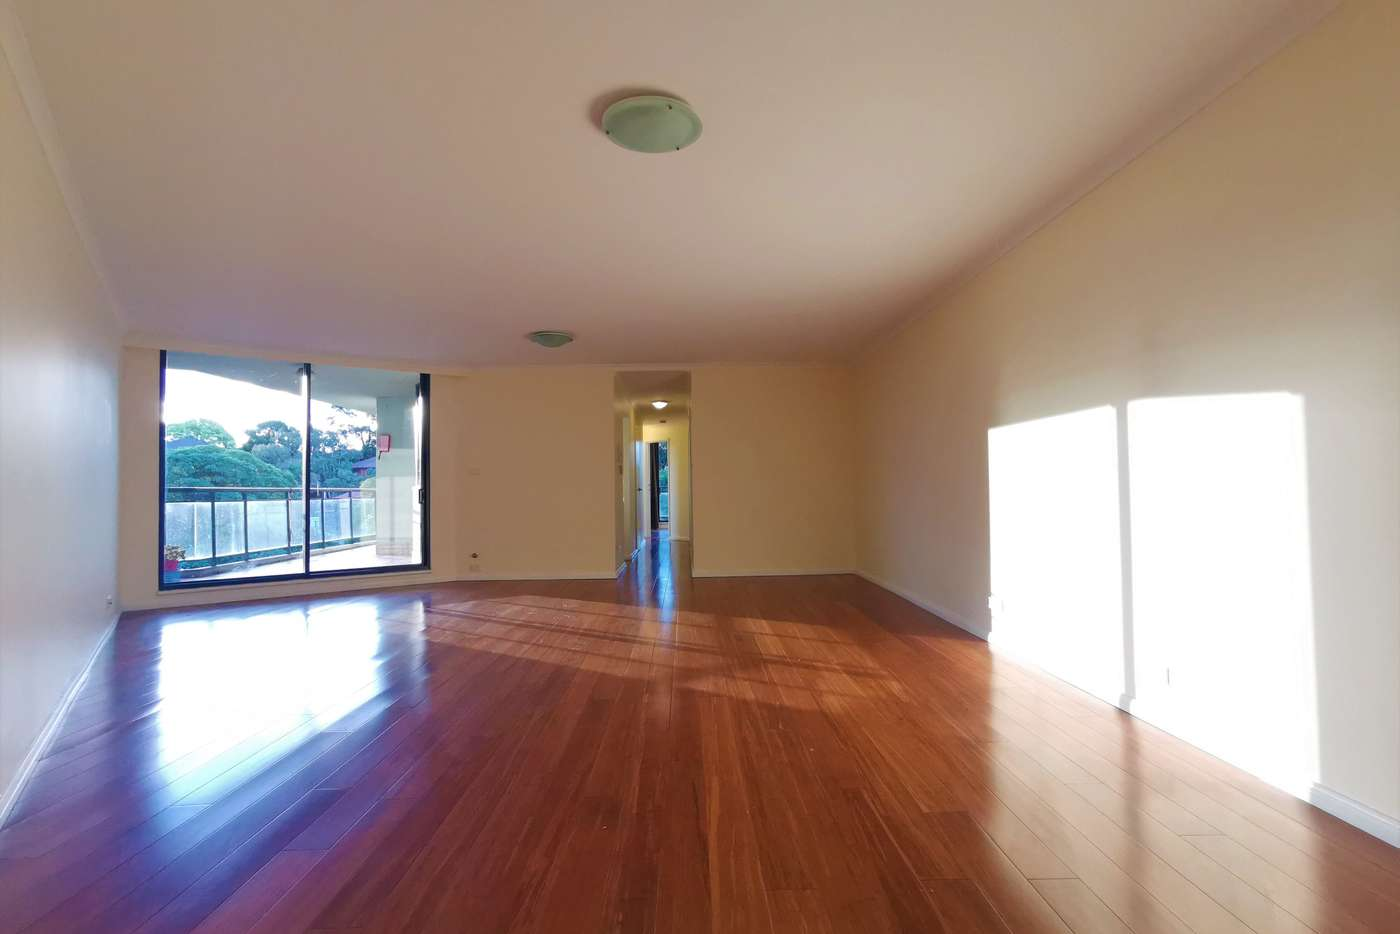 Sixth view of Homely apartment listing, 602/7 Keats Avenue, Rockdale NSW 2216